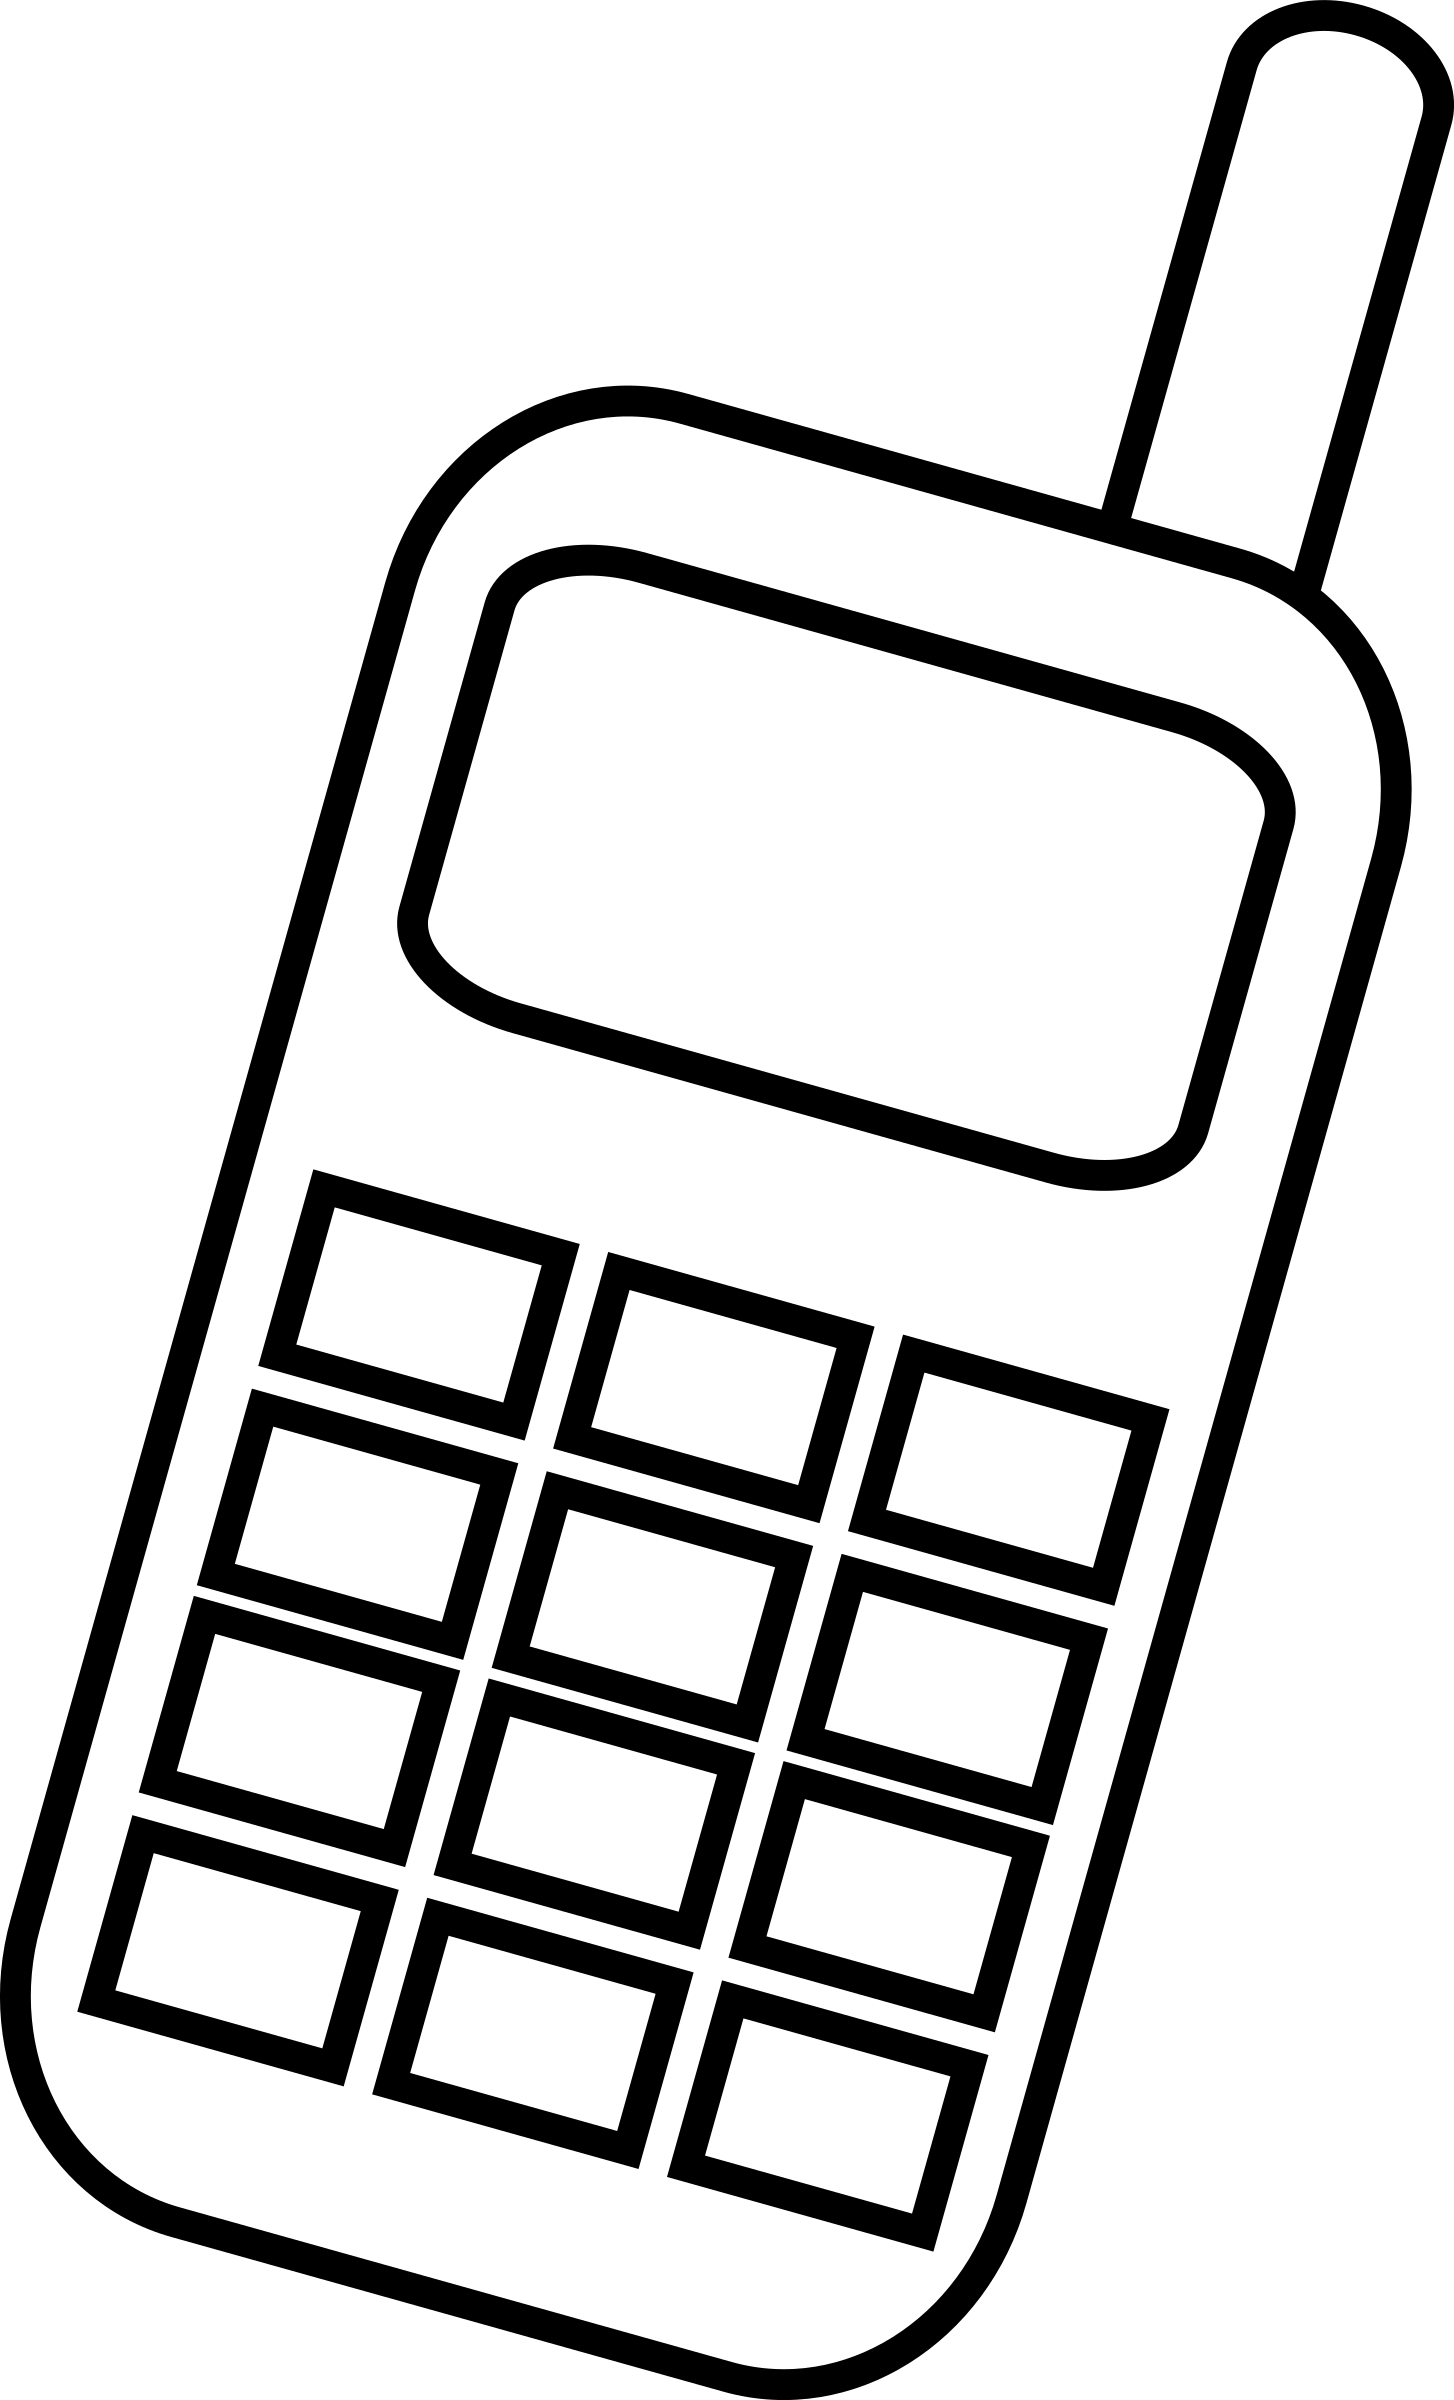 clipart cell phone use - photo #30